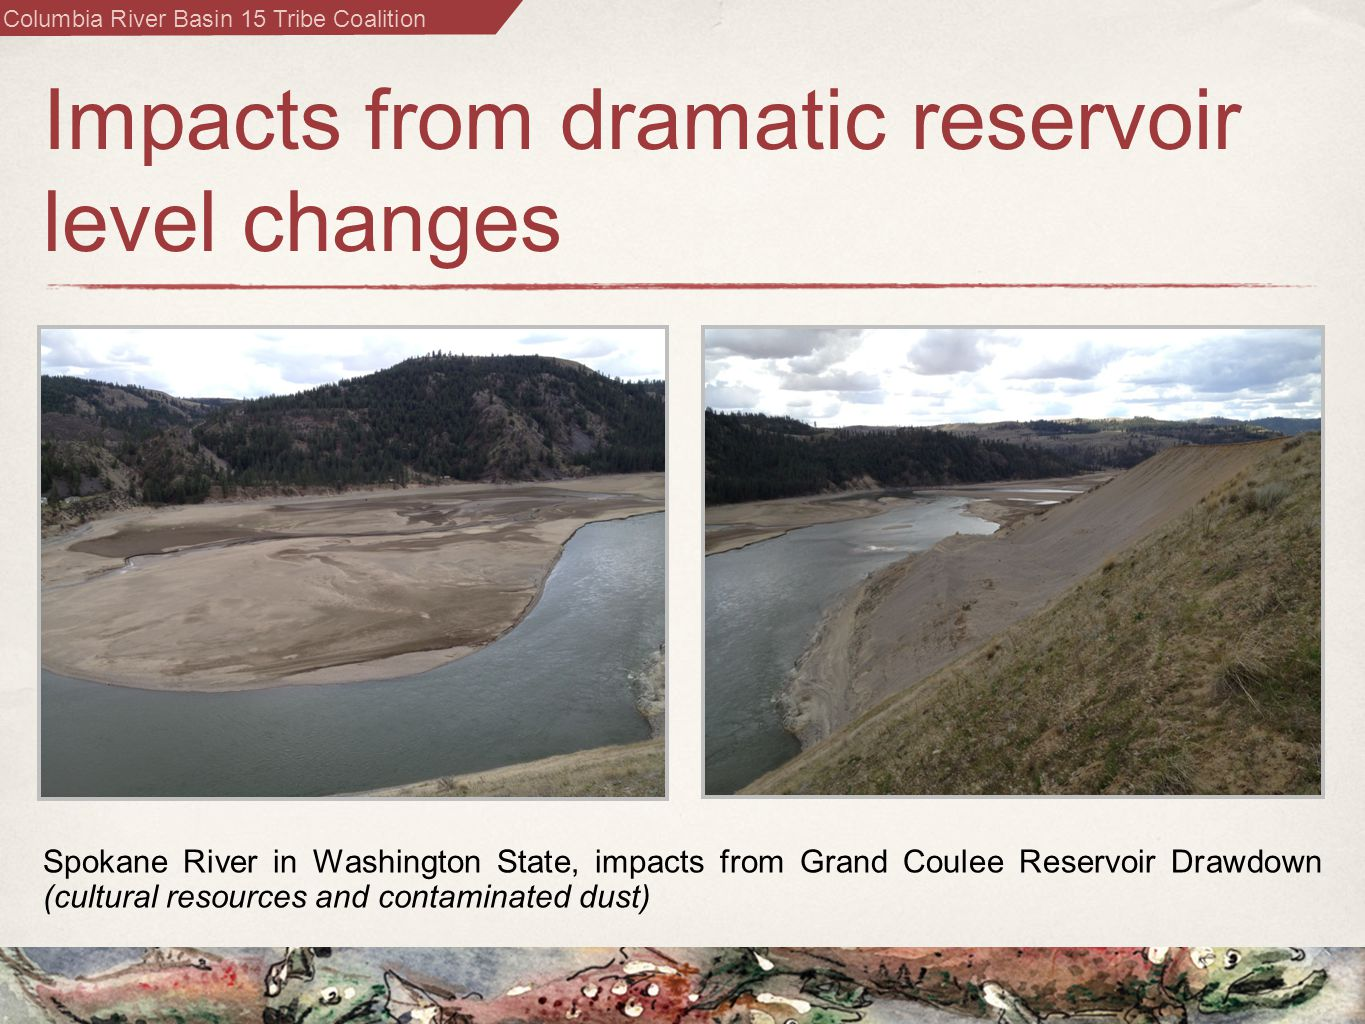 Columbia River Basin 15 Tribe Coalition Impacts from dramatic reservoir level changes Spokane River in Washington State, impacts from Grand Coulee Reservoir Drawdown (cultural resources and contaminated dust)